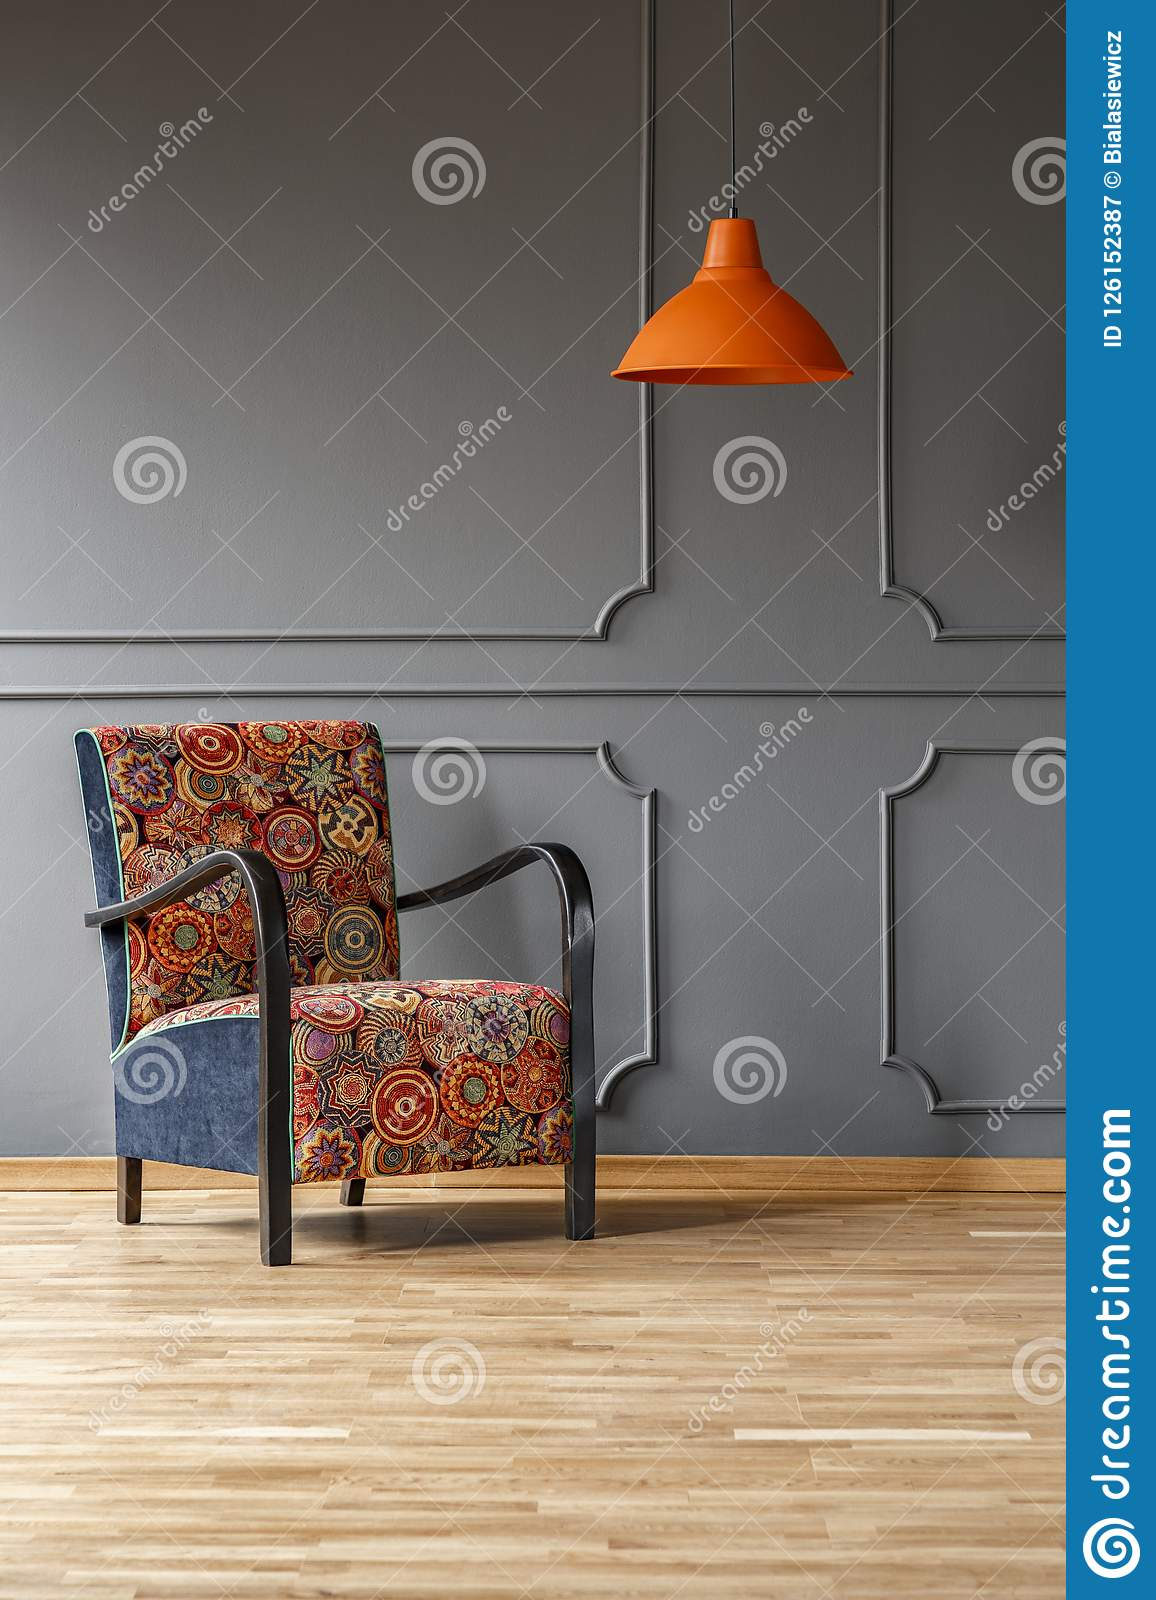 Vibrant orange ceiling light and a comfortable armchair with a colorful boho pattern in a gray living room interior with place for